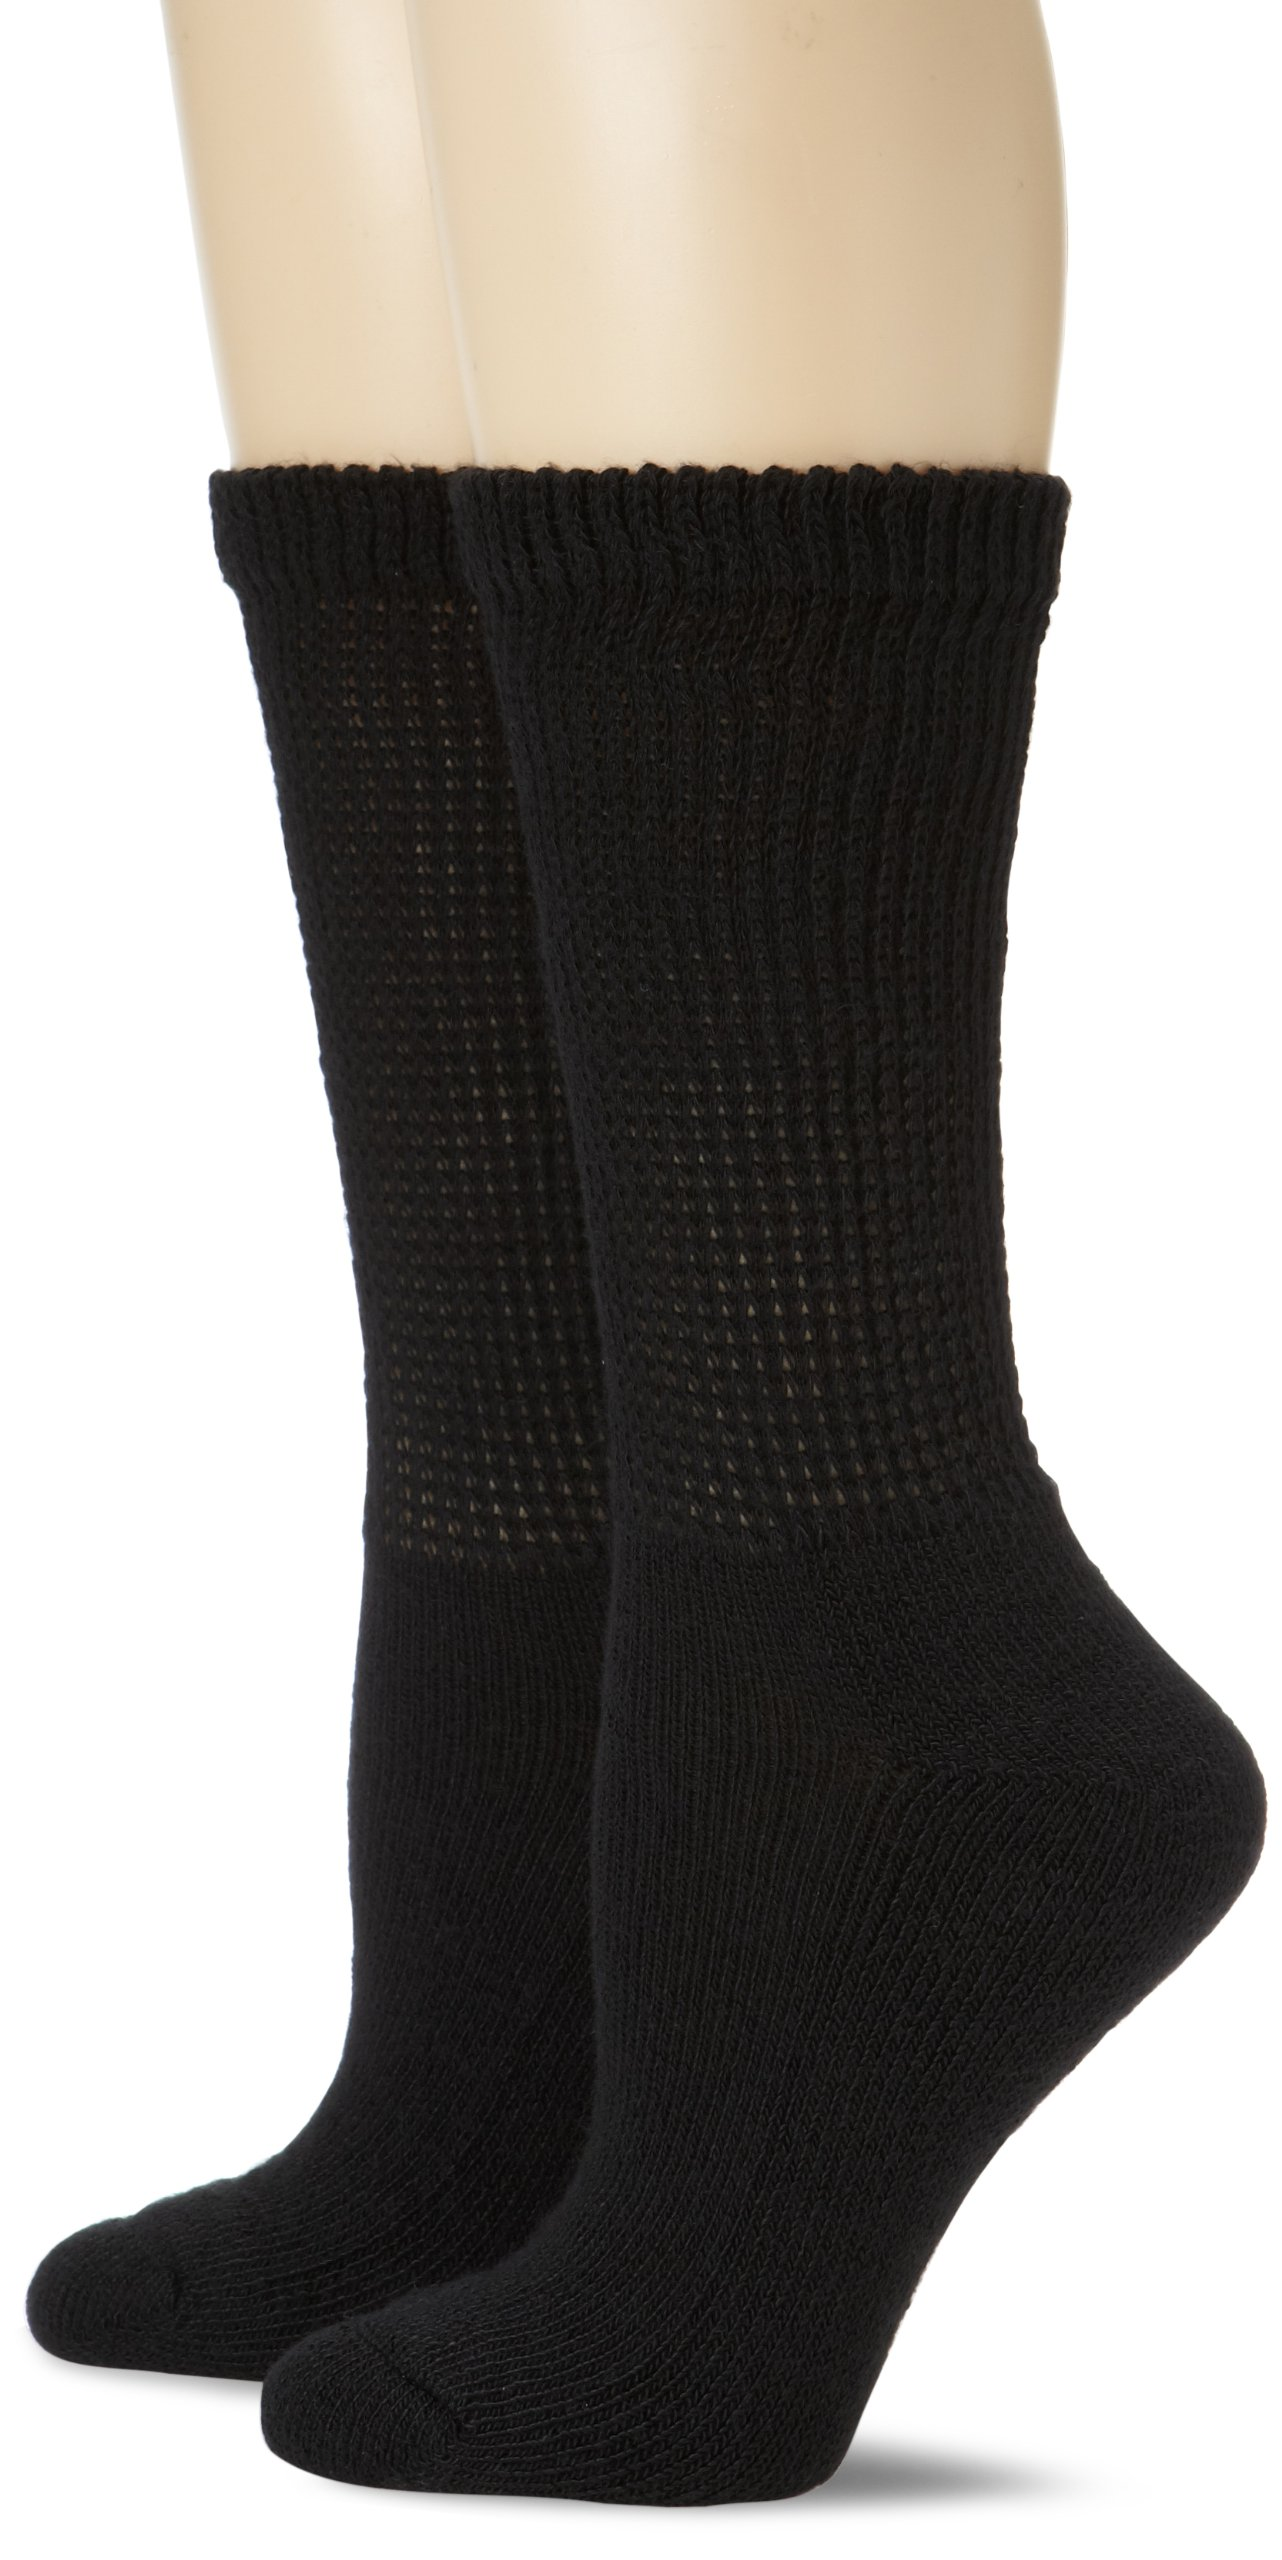 Amazon.com: Diabetic Womens Ankle Socks (3 Pack) 9-11